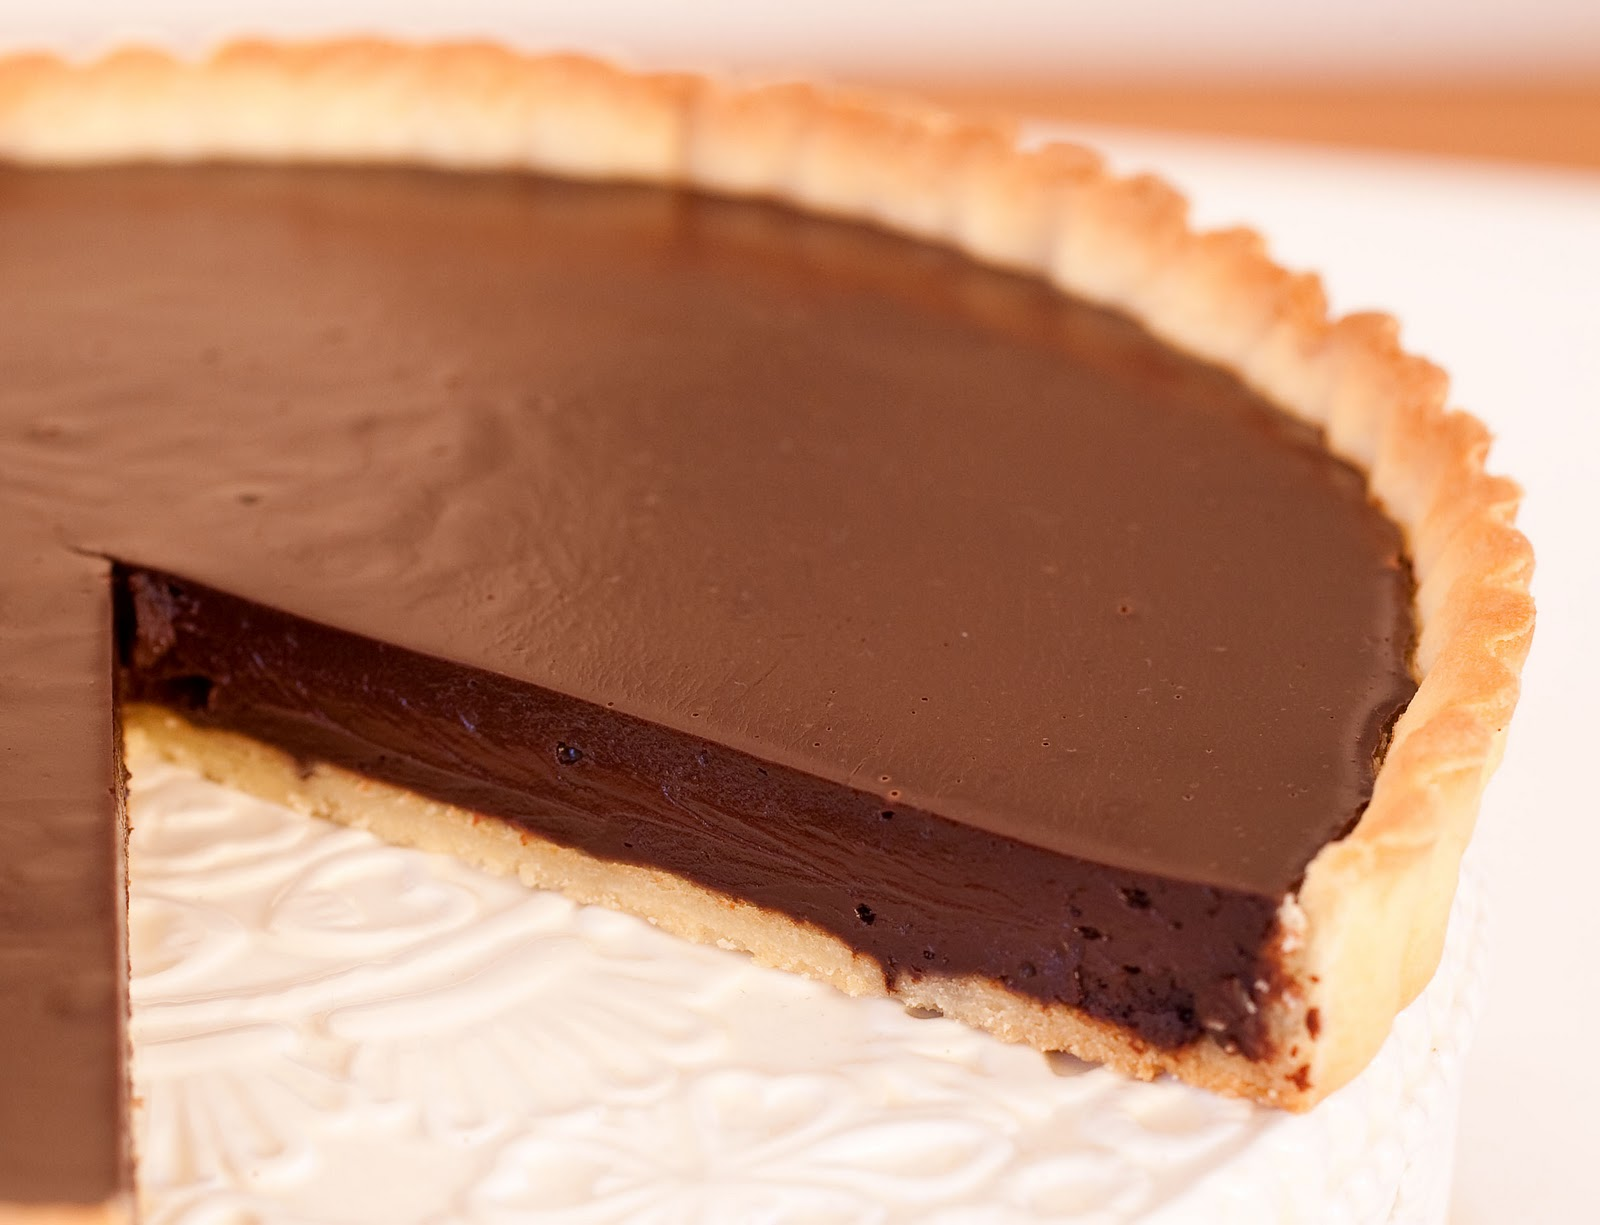 Tish Boyle Sweet Dreams: François Payard's Warm Chocolate Tart